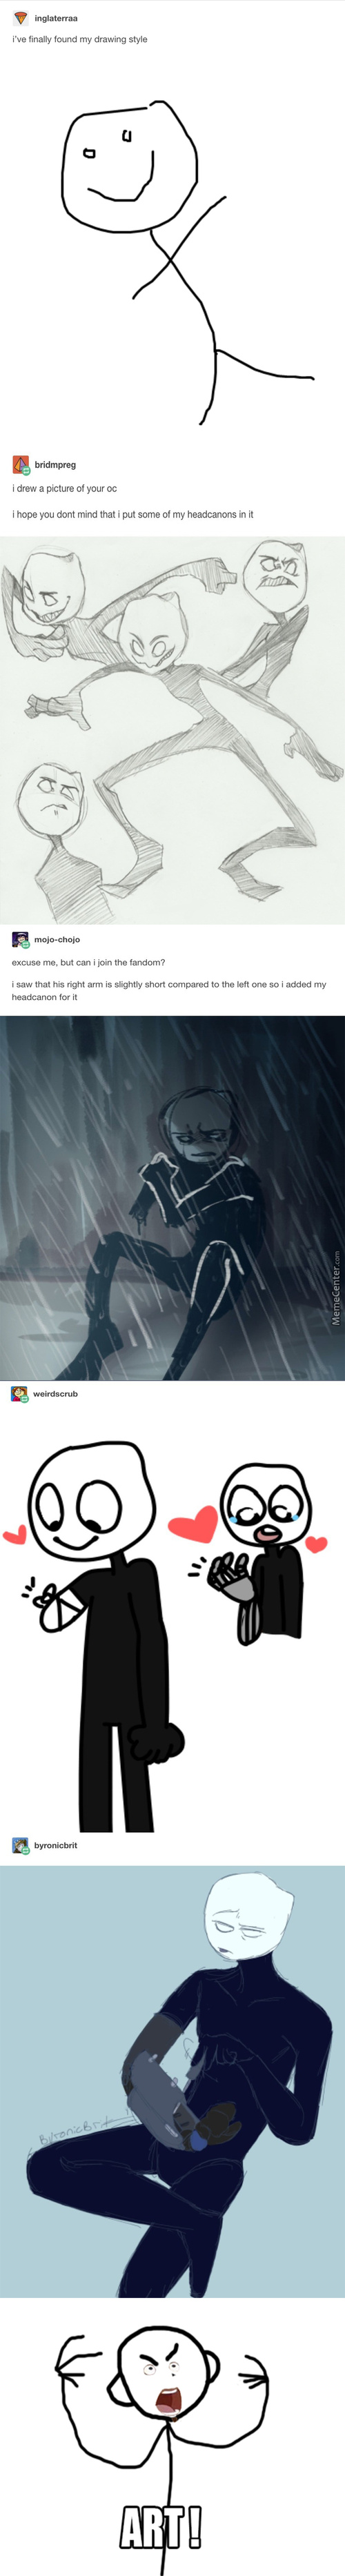 It's Awesome How They Made 1 Lazy Drawing Into A Big Comic